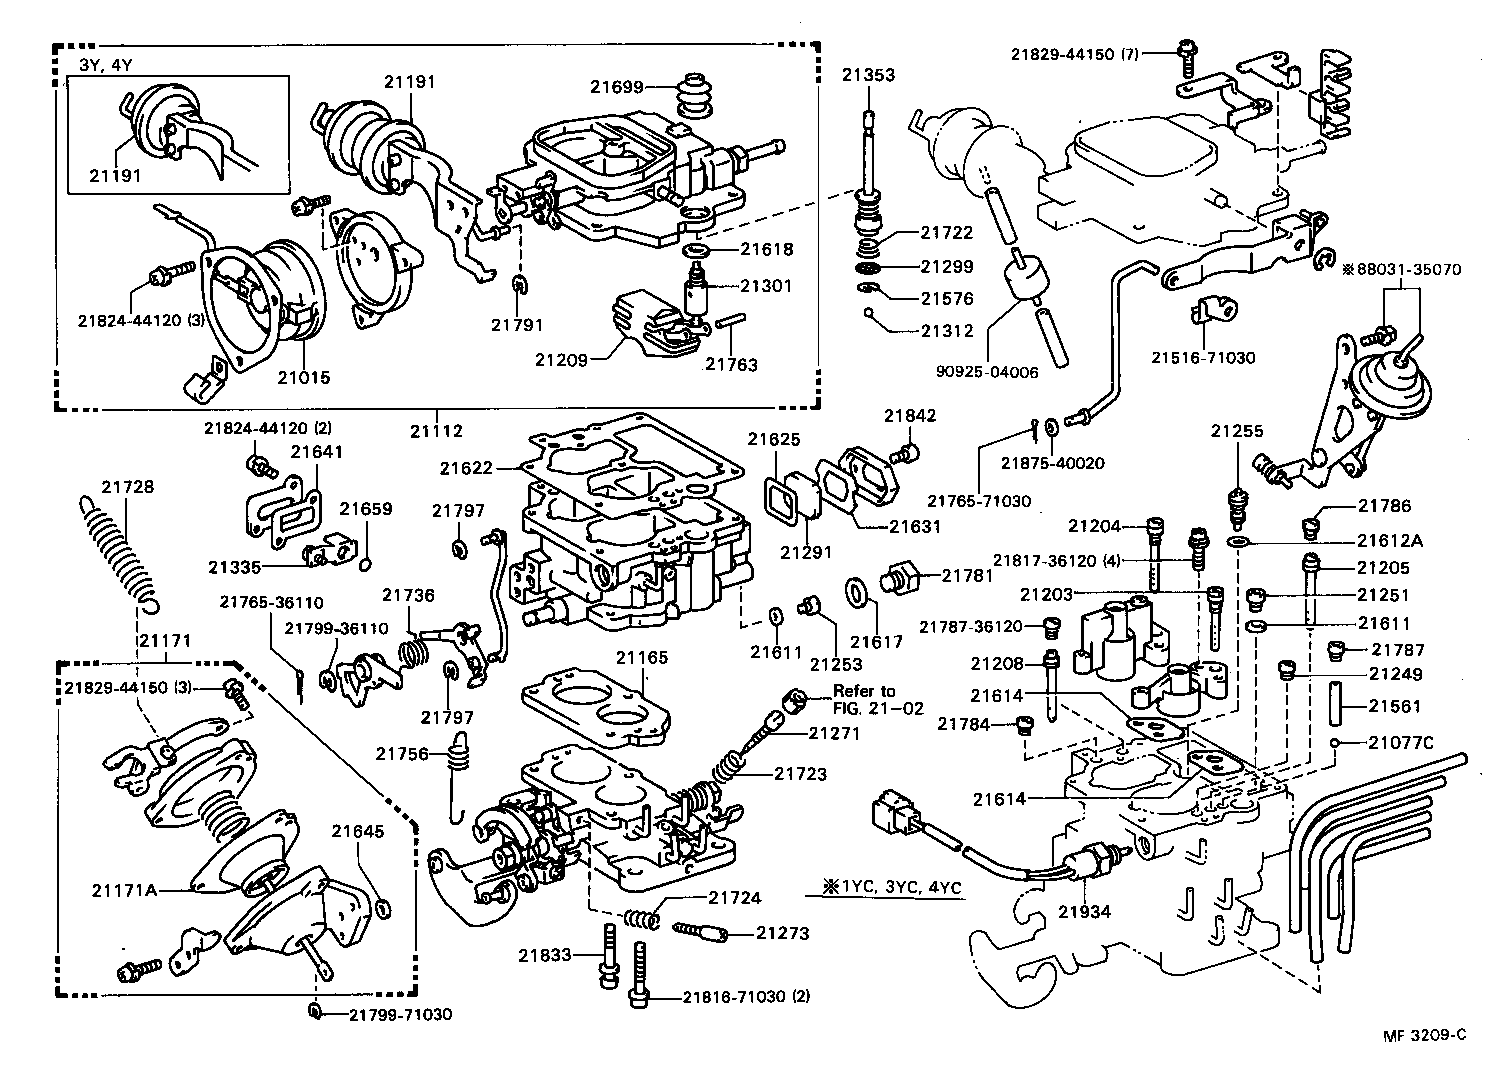 Carburetor diagram toyota on 1994 toyota 22re engine diagram